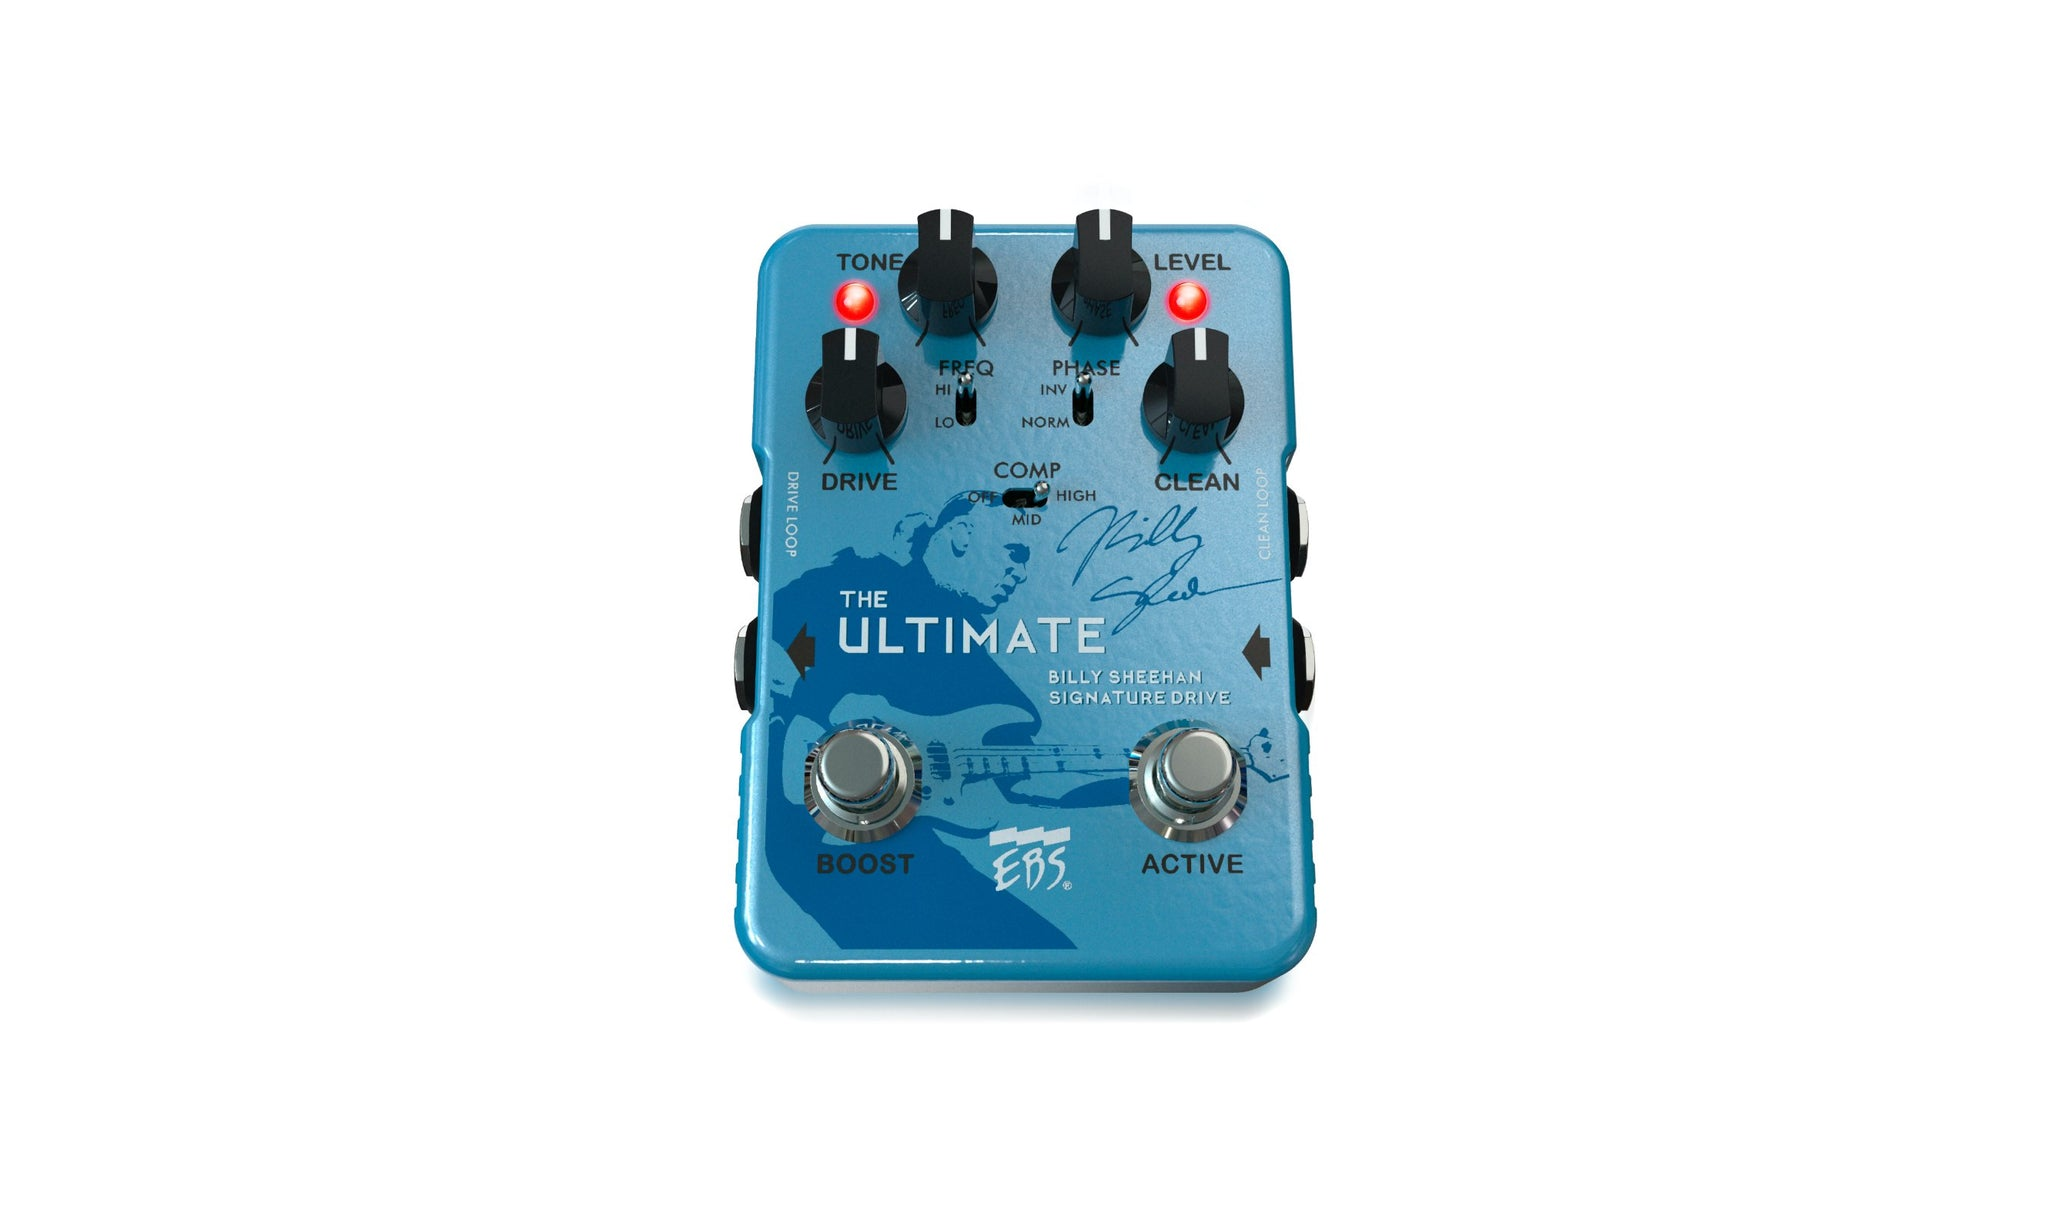 EBS Billy Sheehan Ultimate Signature Drive with extended capabilities